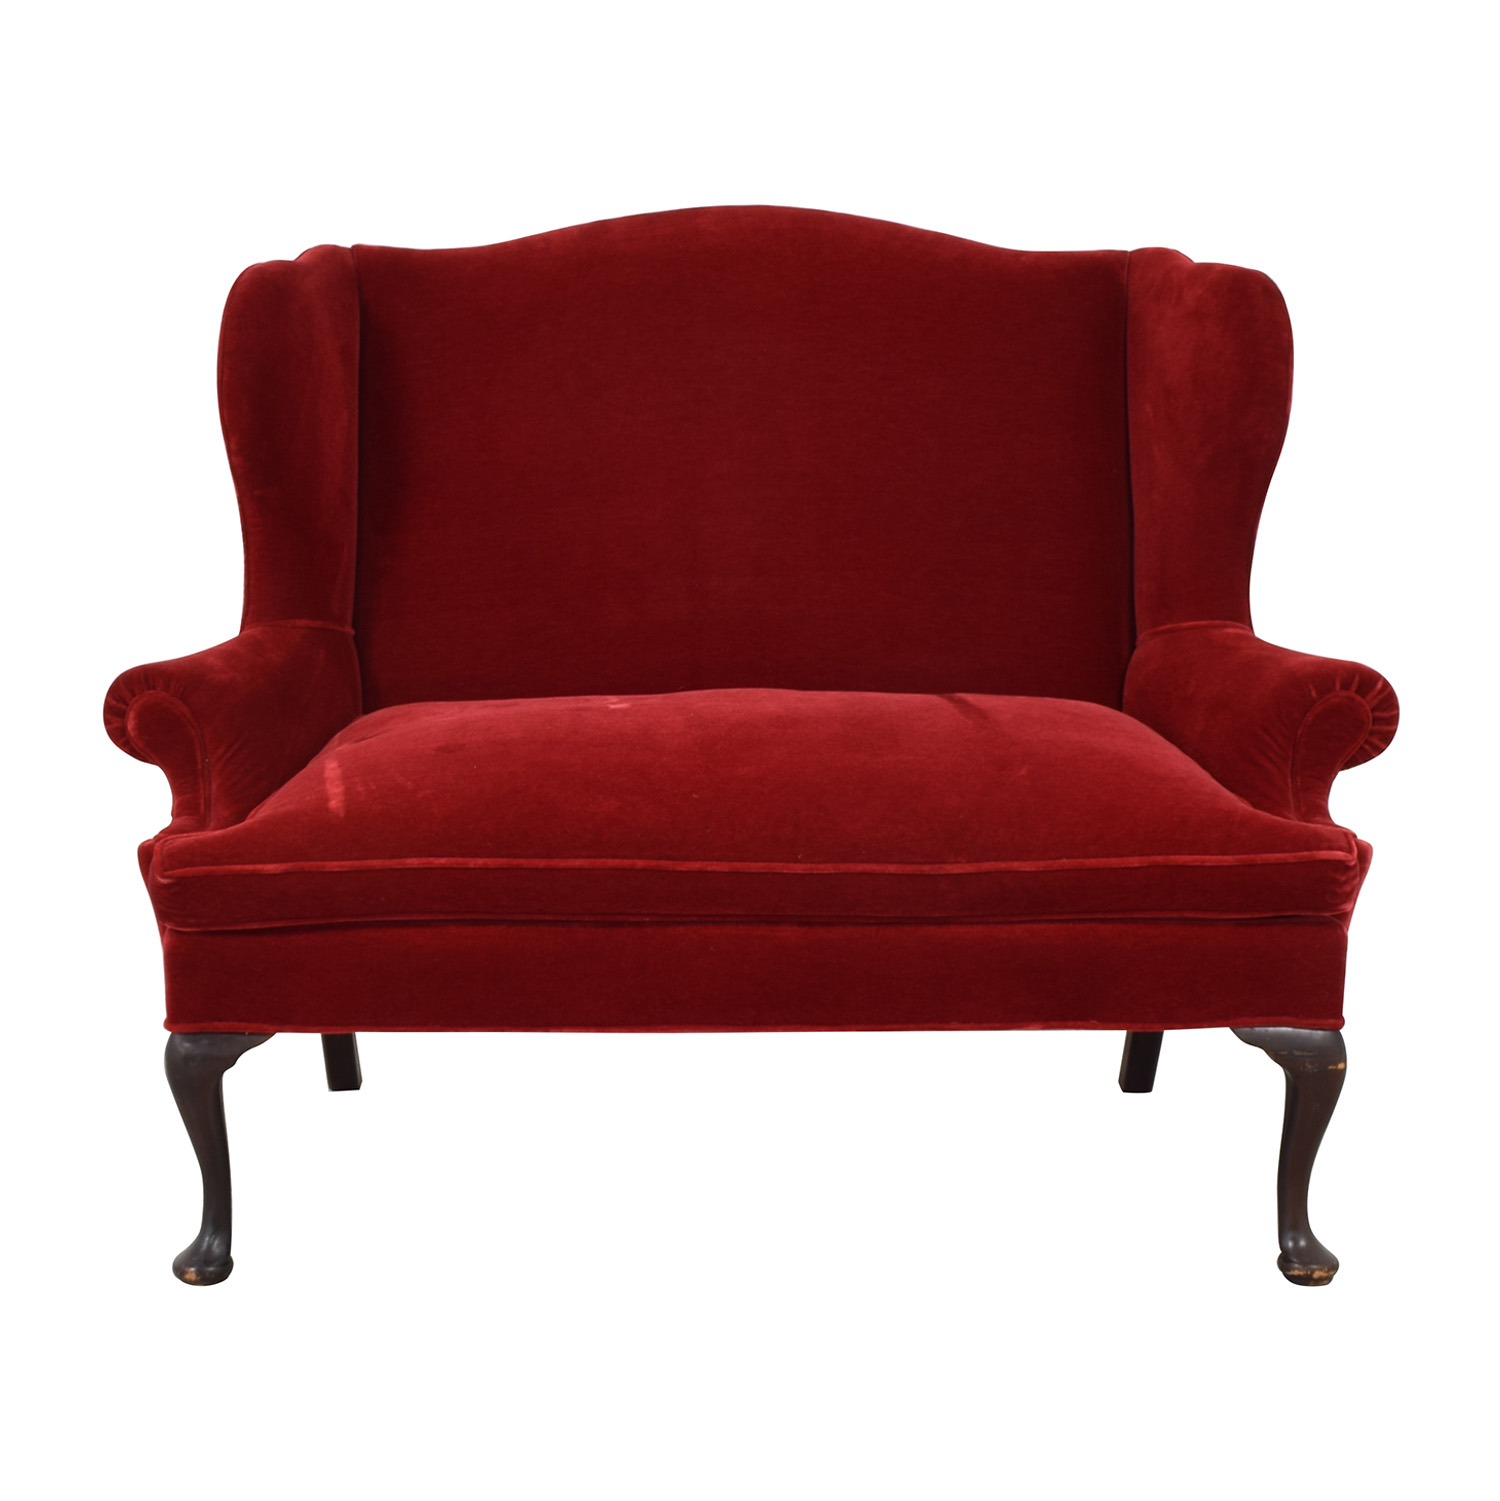 63% OFF - Frederick Edward Frederick Edward Red Loveseat or Settee / Sofas